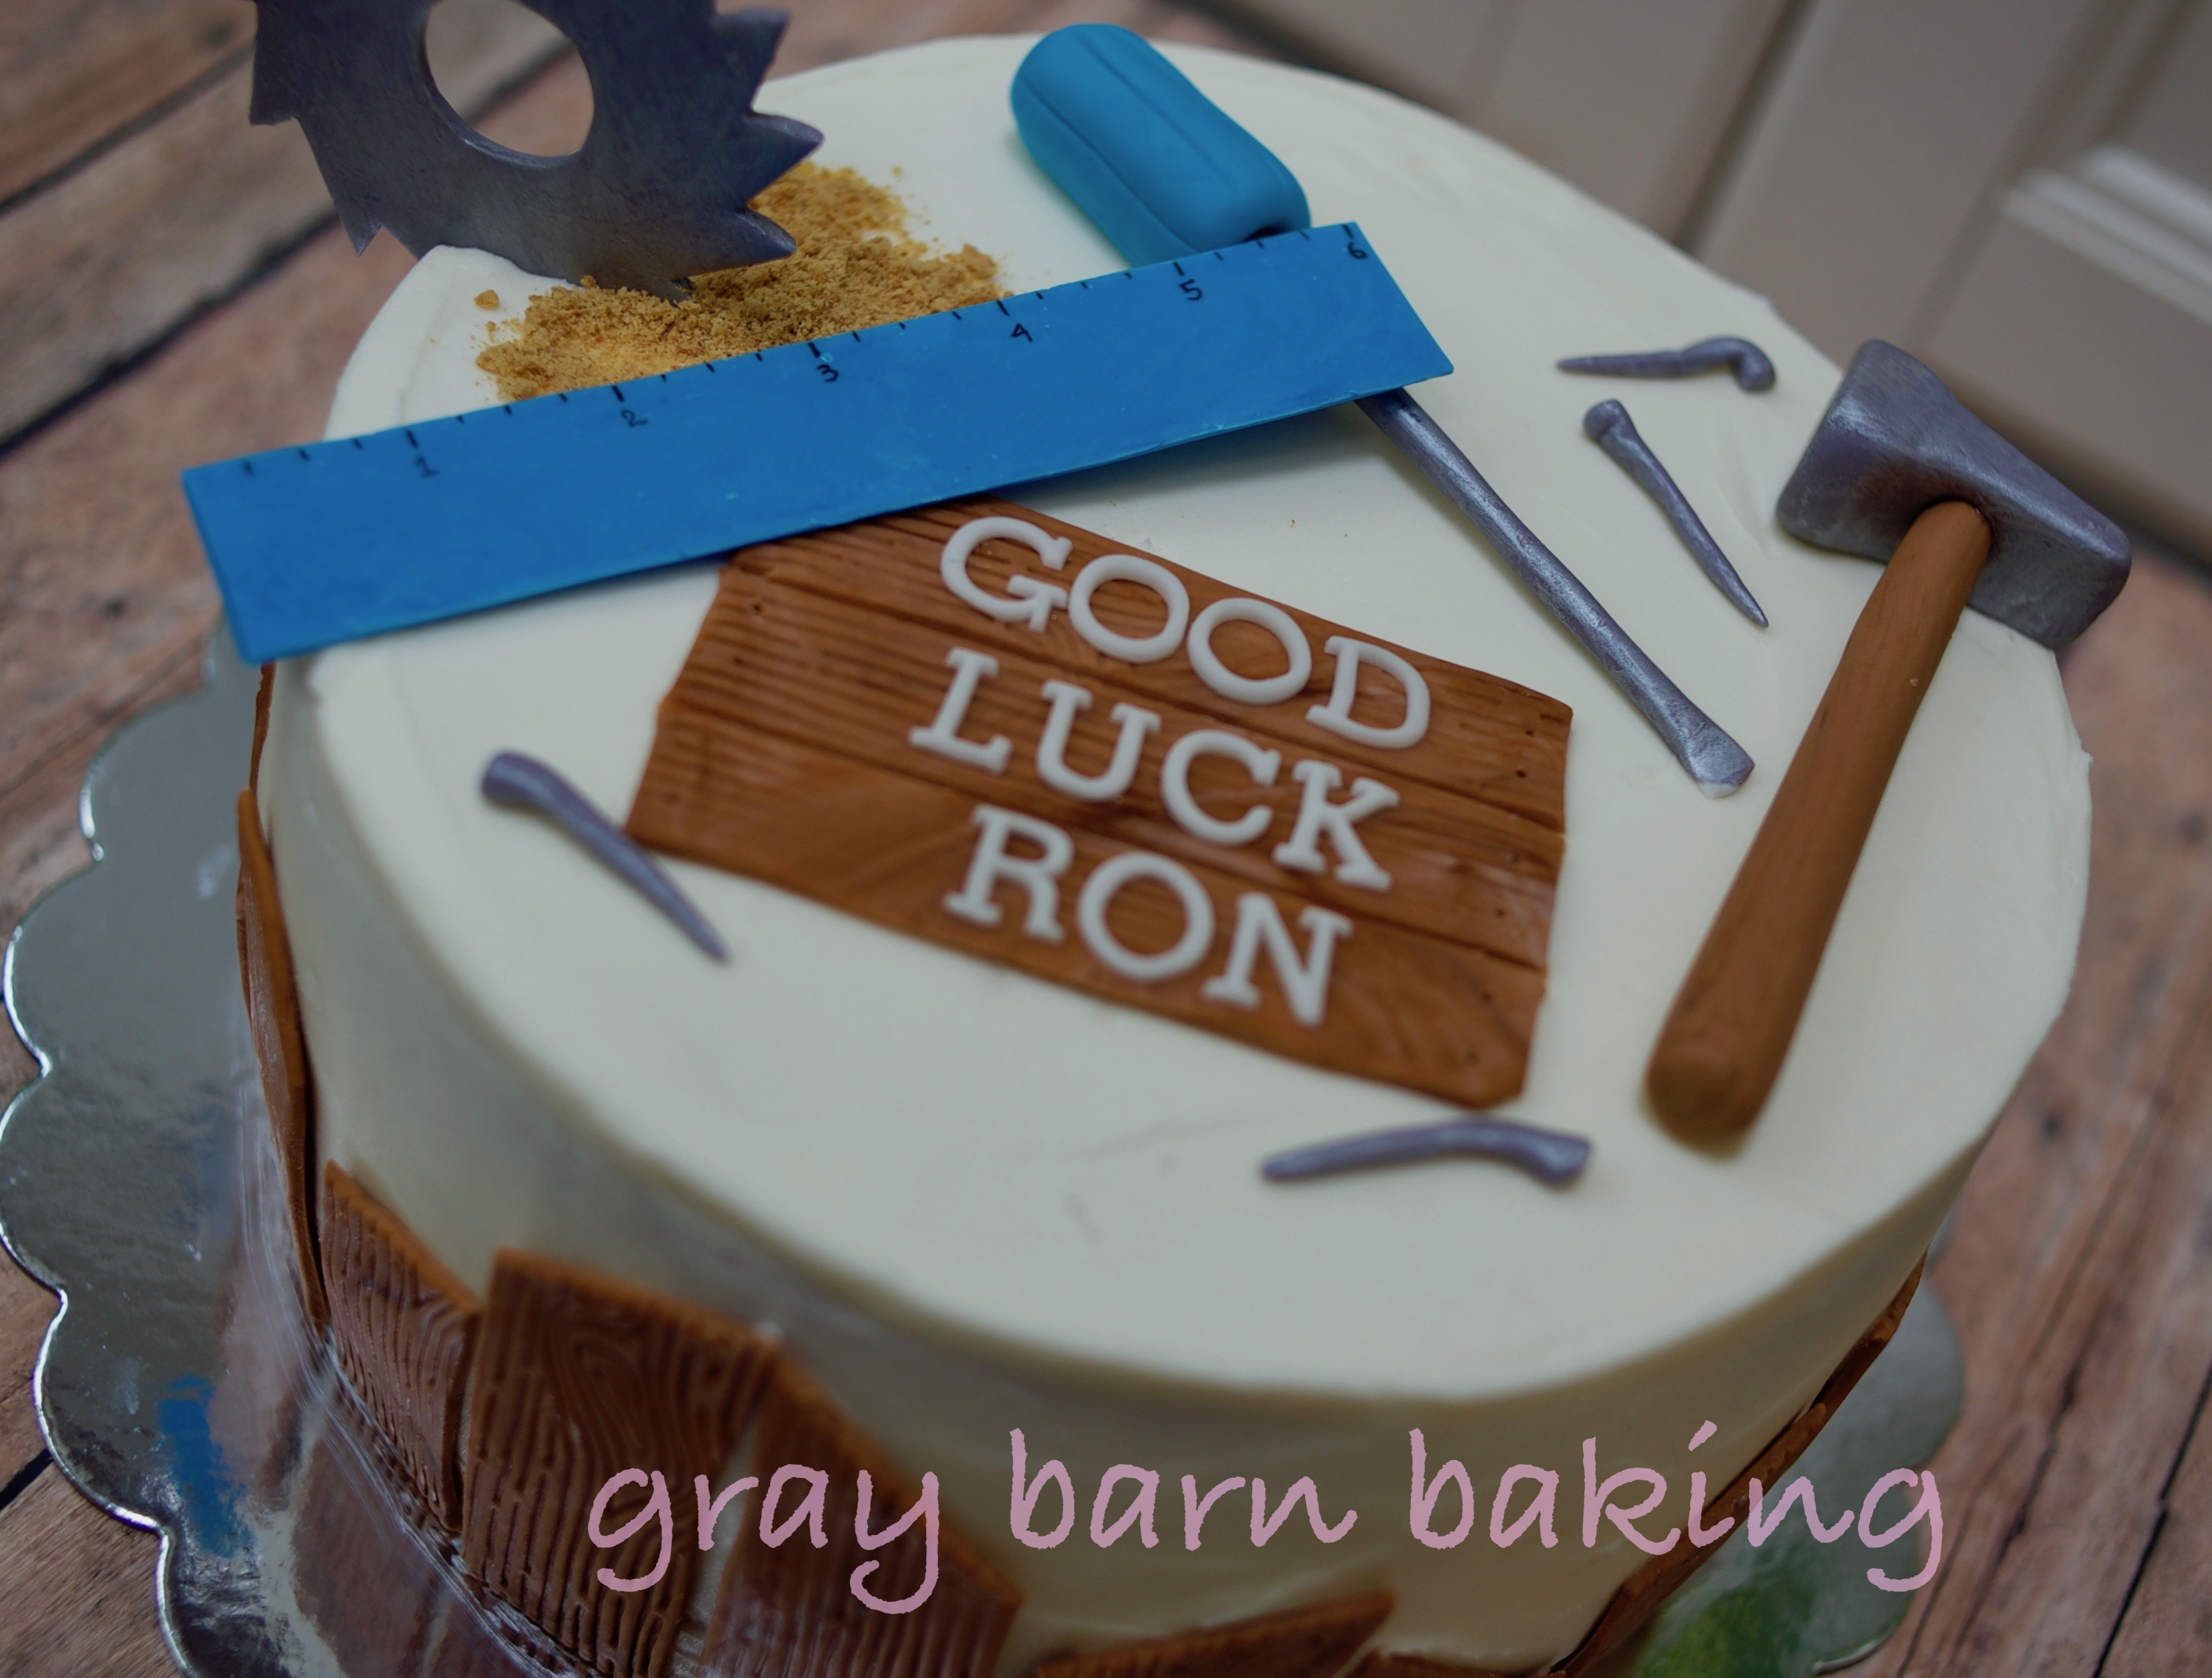 carpenter cake0004